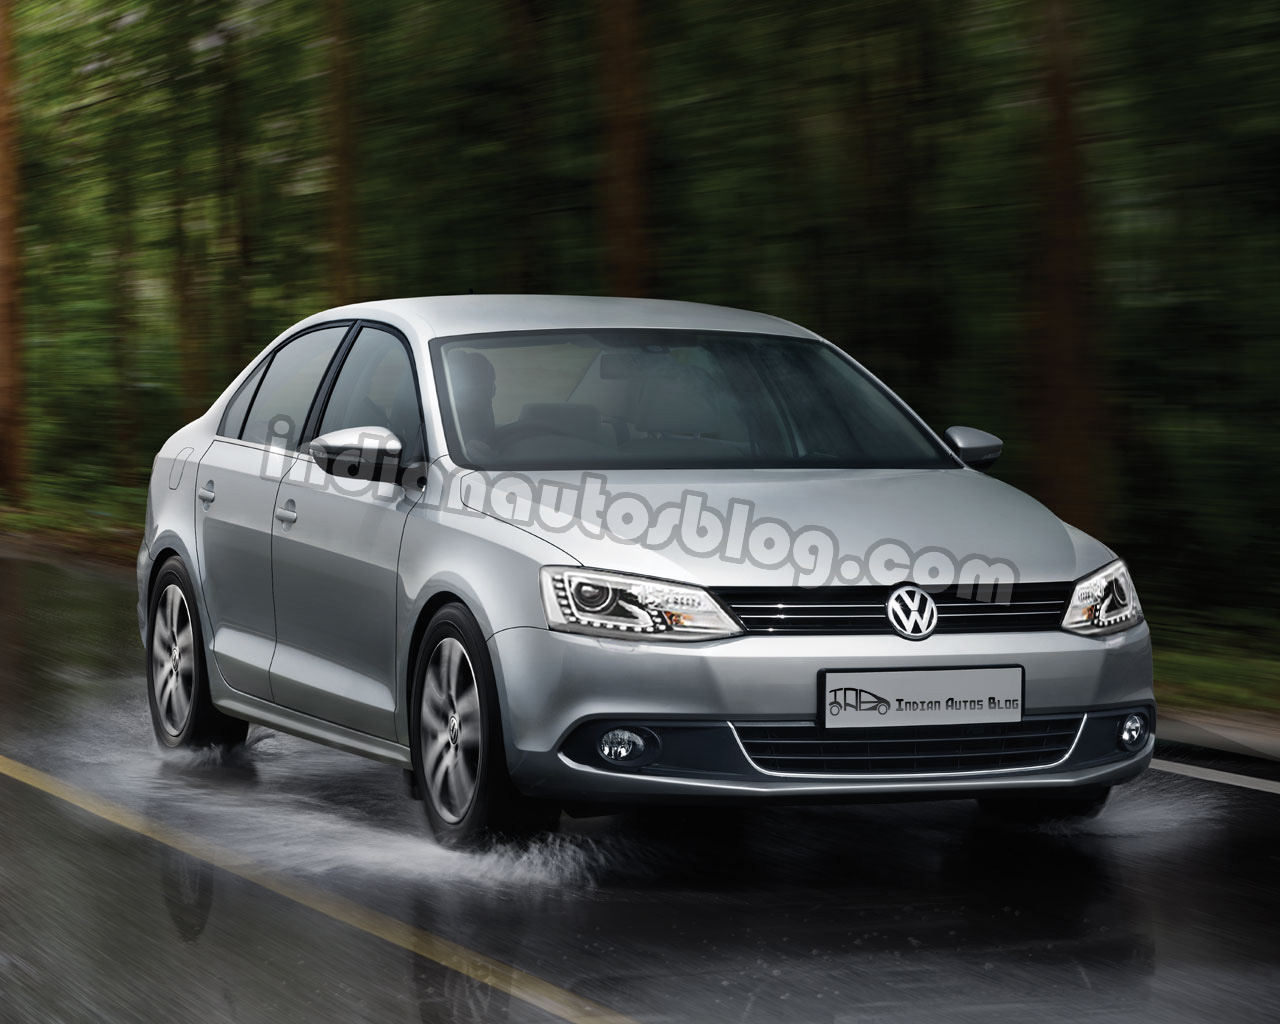 volkswagen jetta facelift india launch details and prices leaked. Black Bedroom Furniture Sets. Home Design Ideas